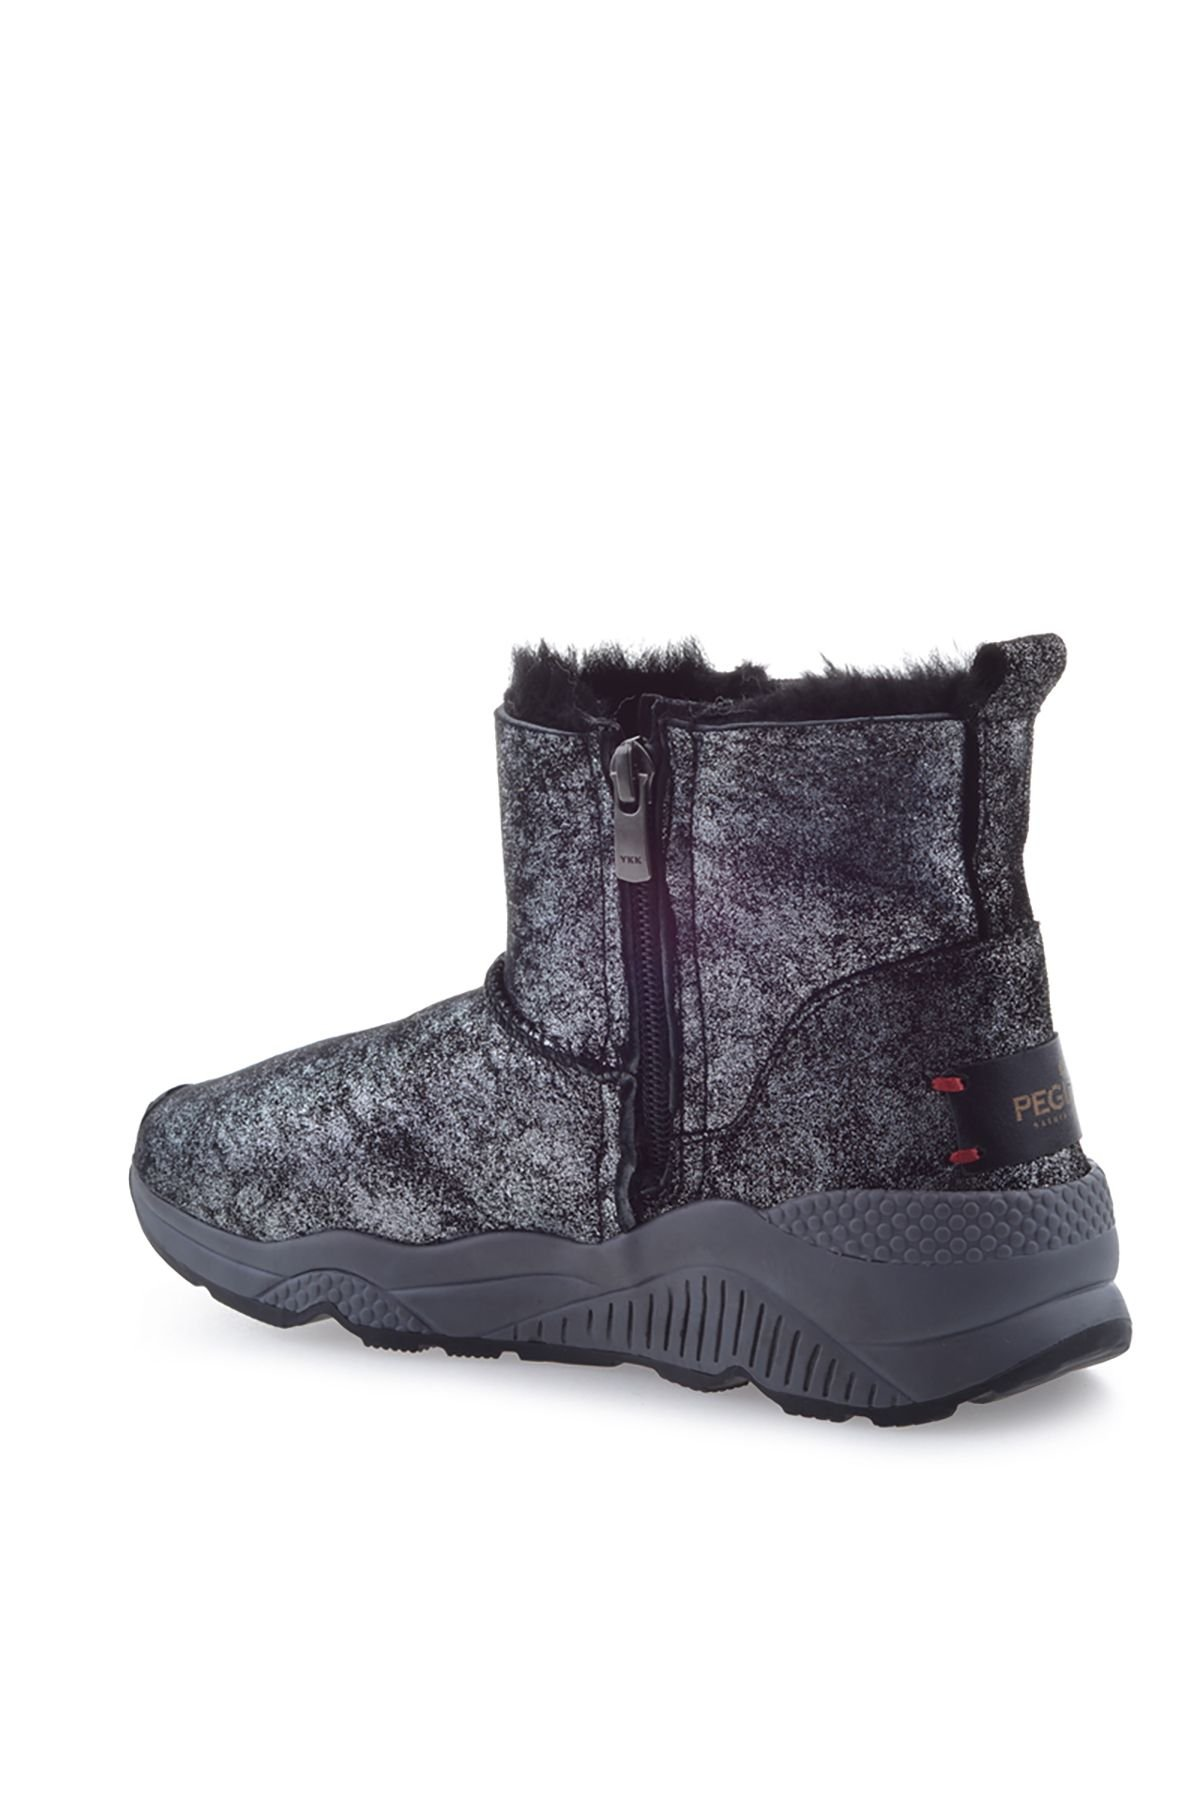 Pegia Women Boots From Genuine Fur With Side Zip 157401 Silver